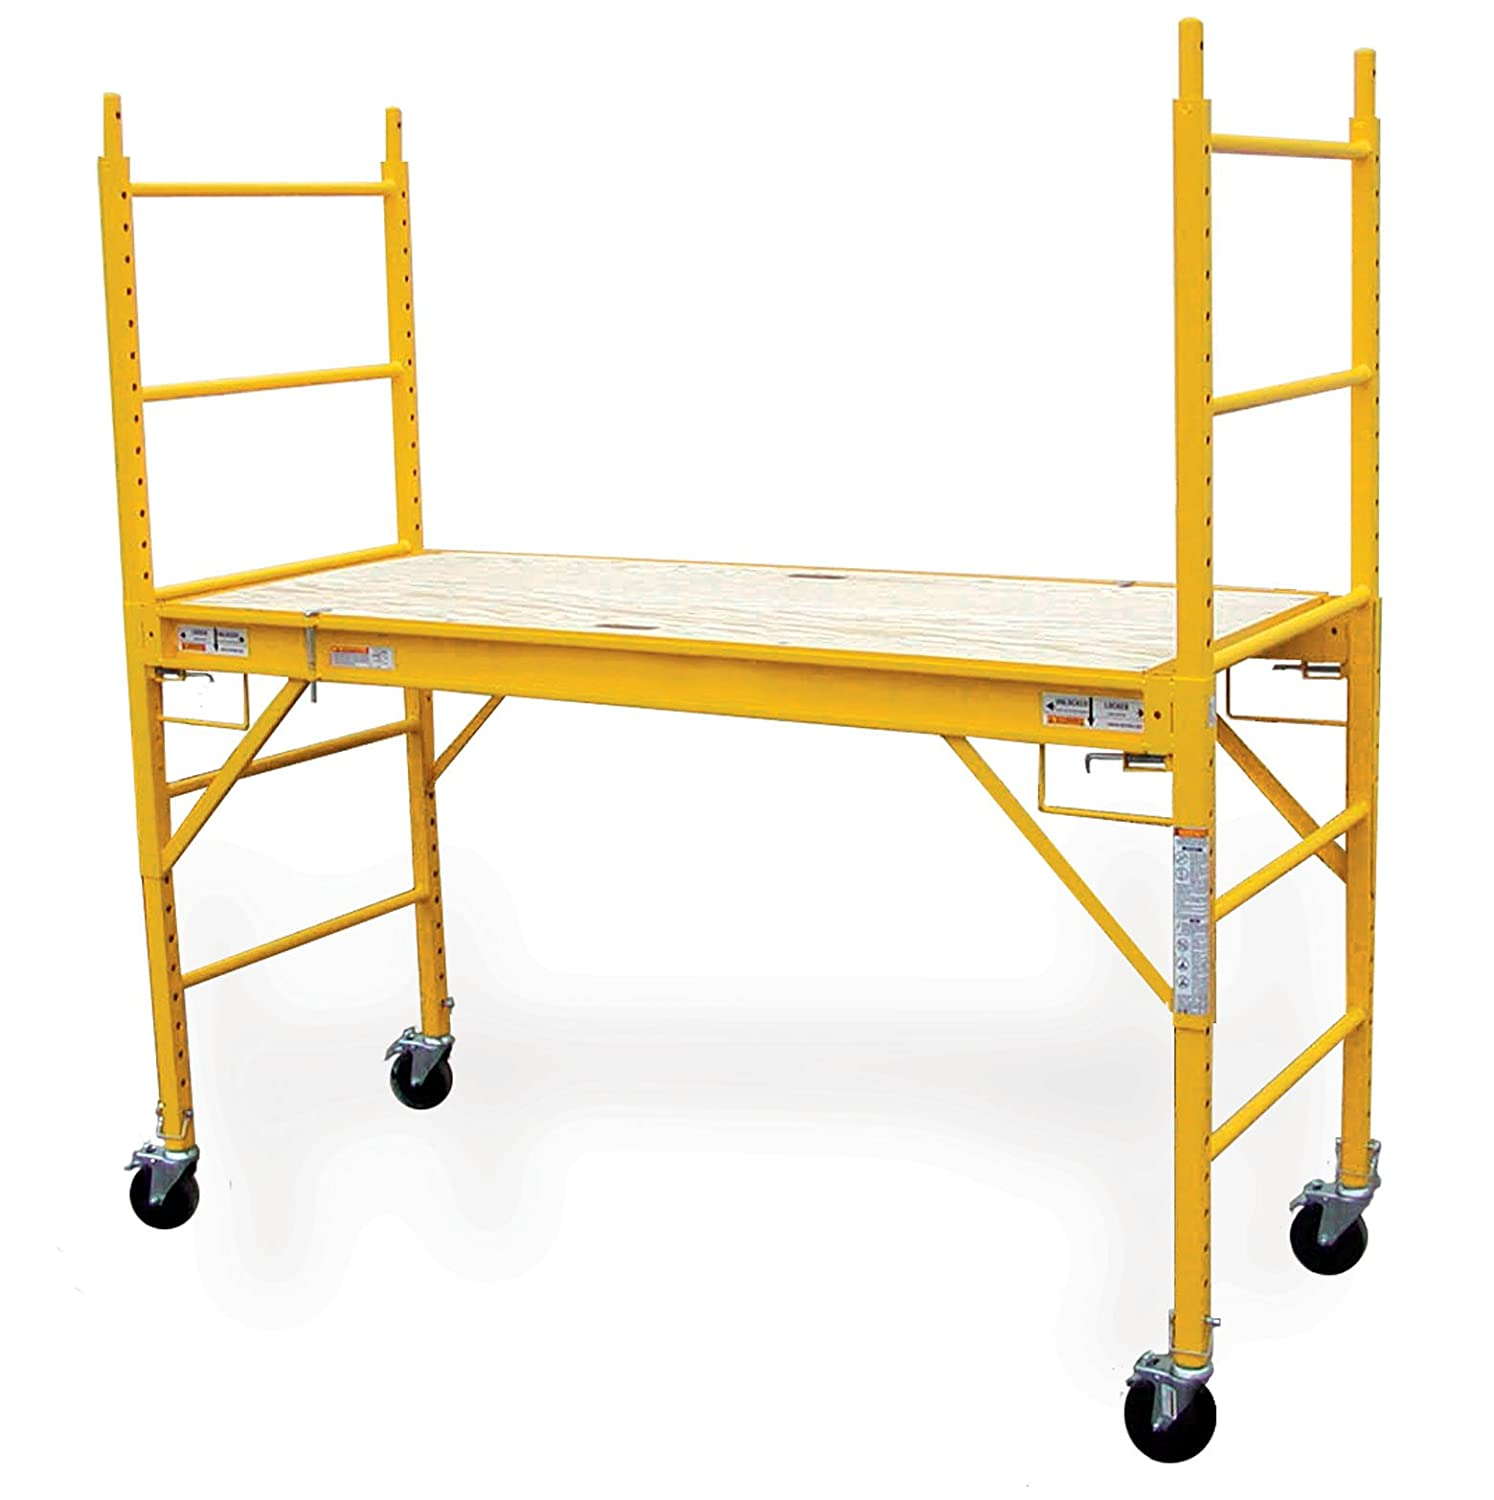 Pro-Series GSSI Multi Purpose Scaffolding, 6-Feet Buffalo Tools 05626AZ